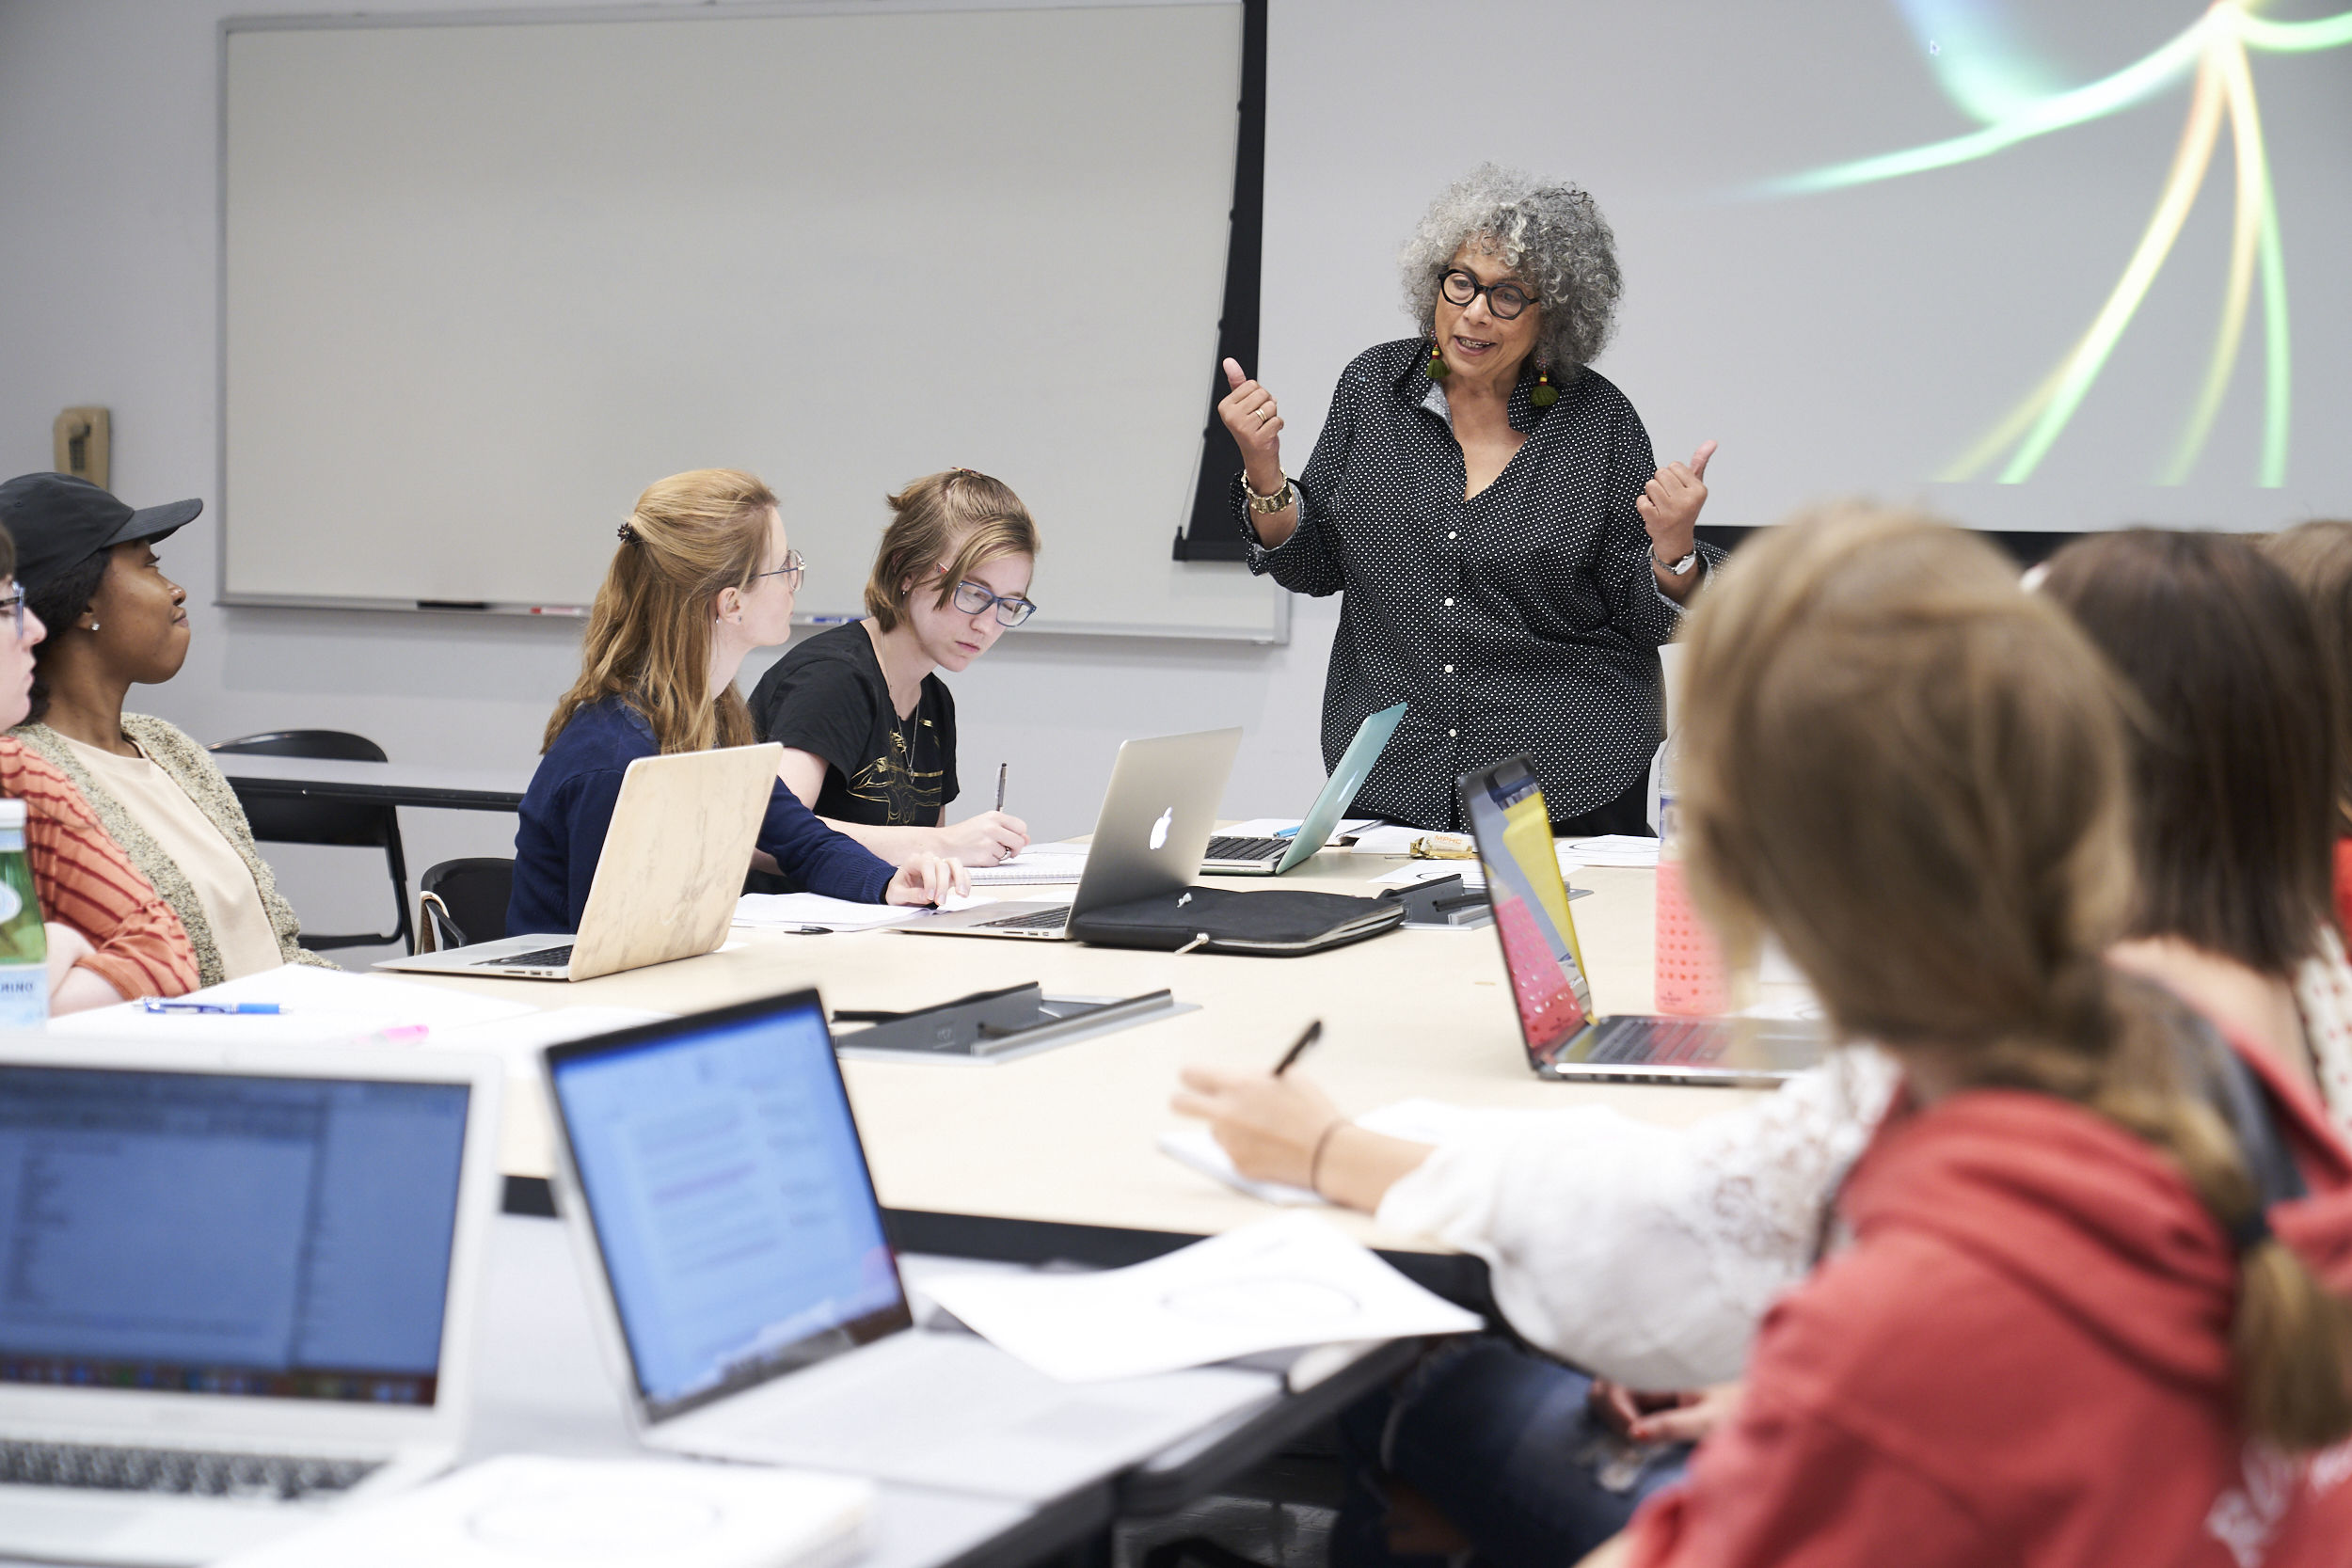 A class of Tyler Art History students led by Linda Earle, Professor of Practice in Fine Arts Management.